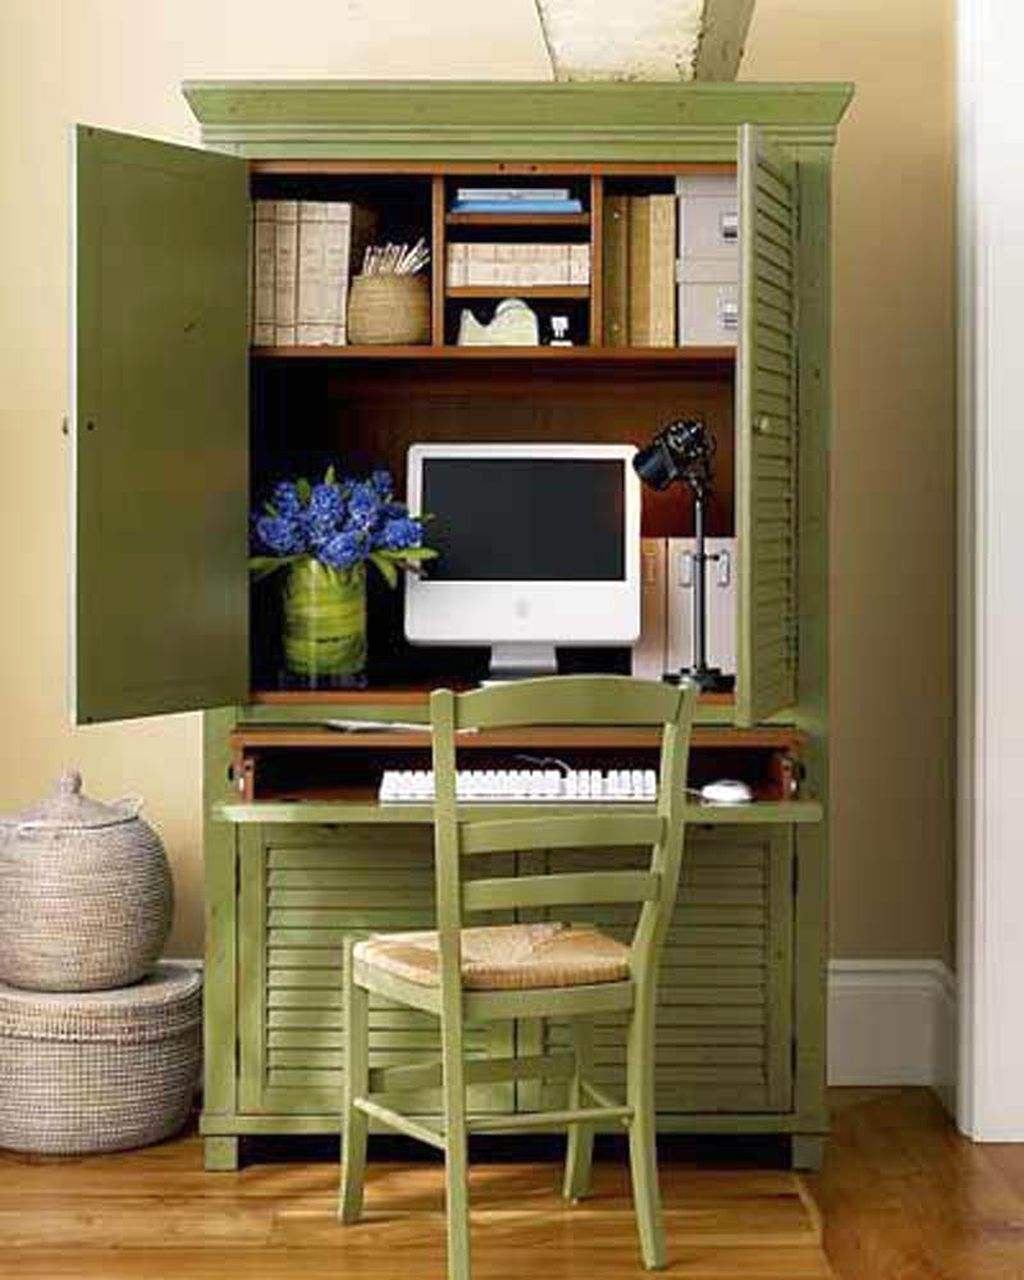 Green cupboard home office design ideas for small spaces for Office design ideas for home